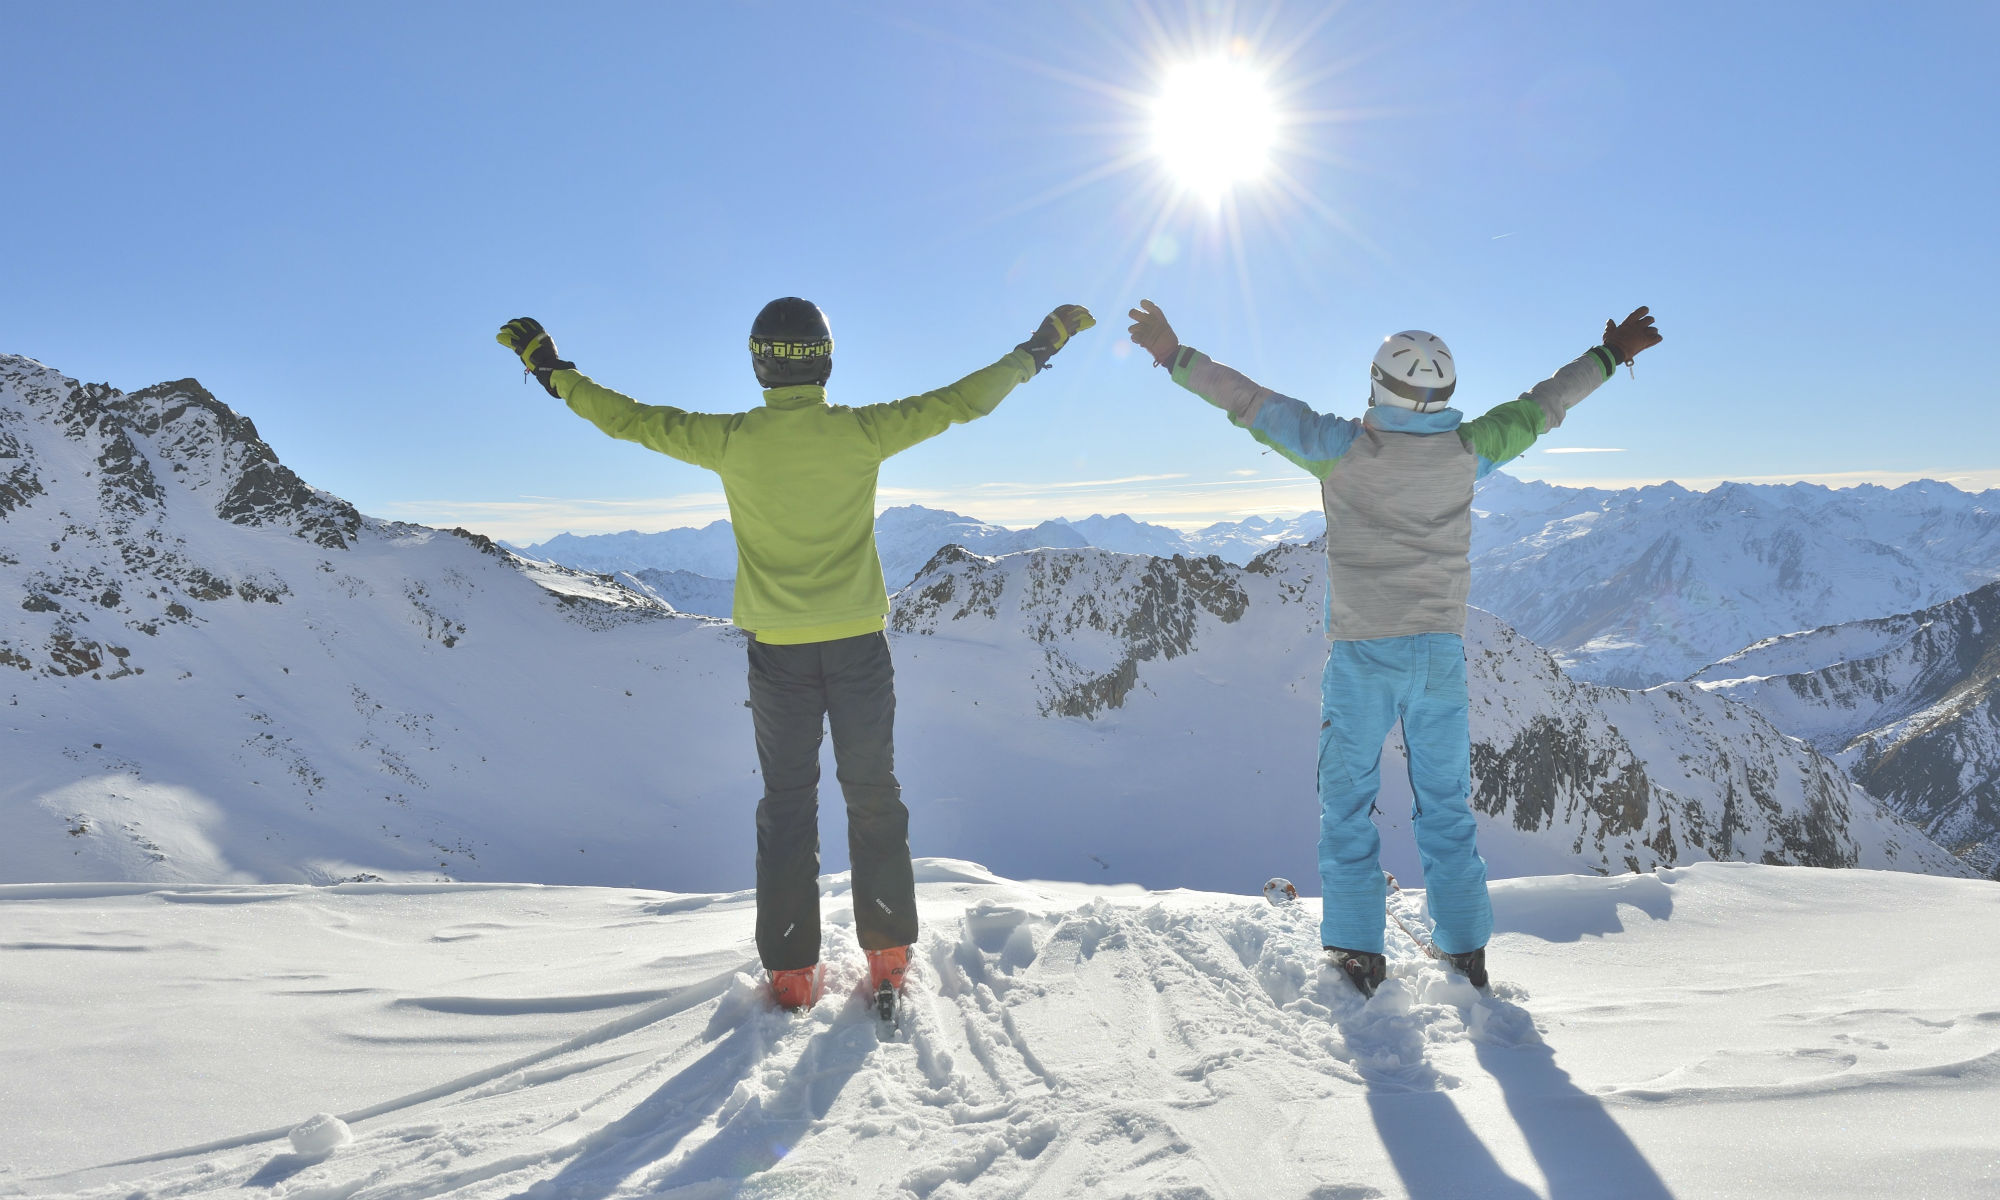 Two skiers enjoying a sunny day on a mountain.